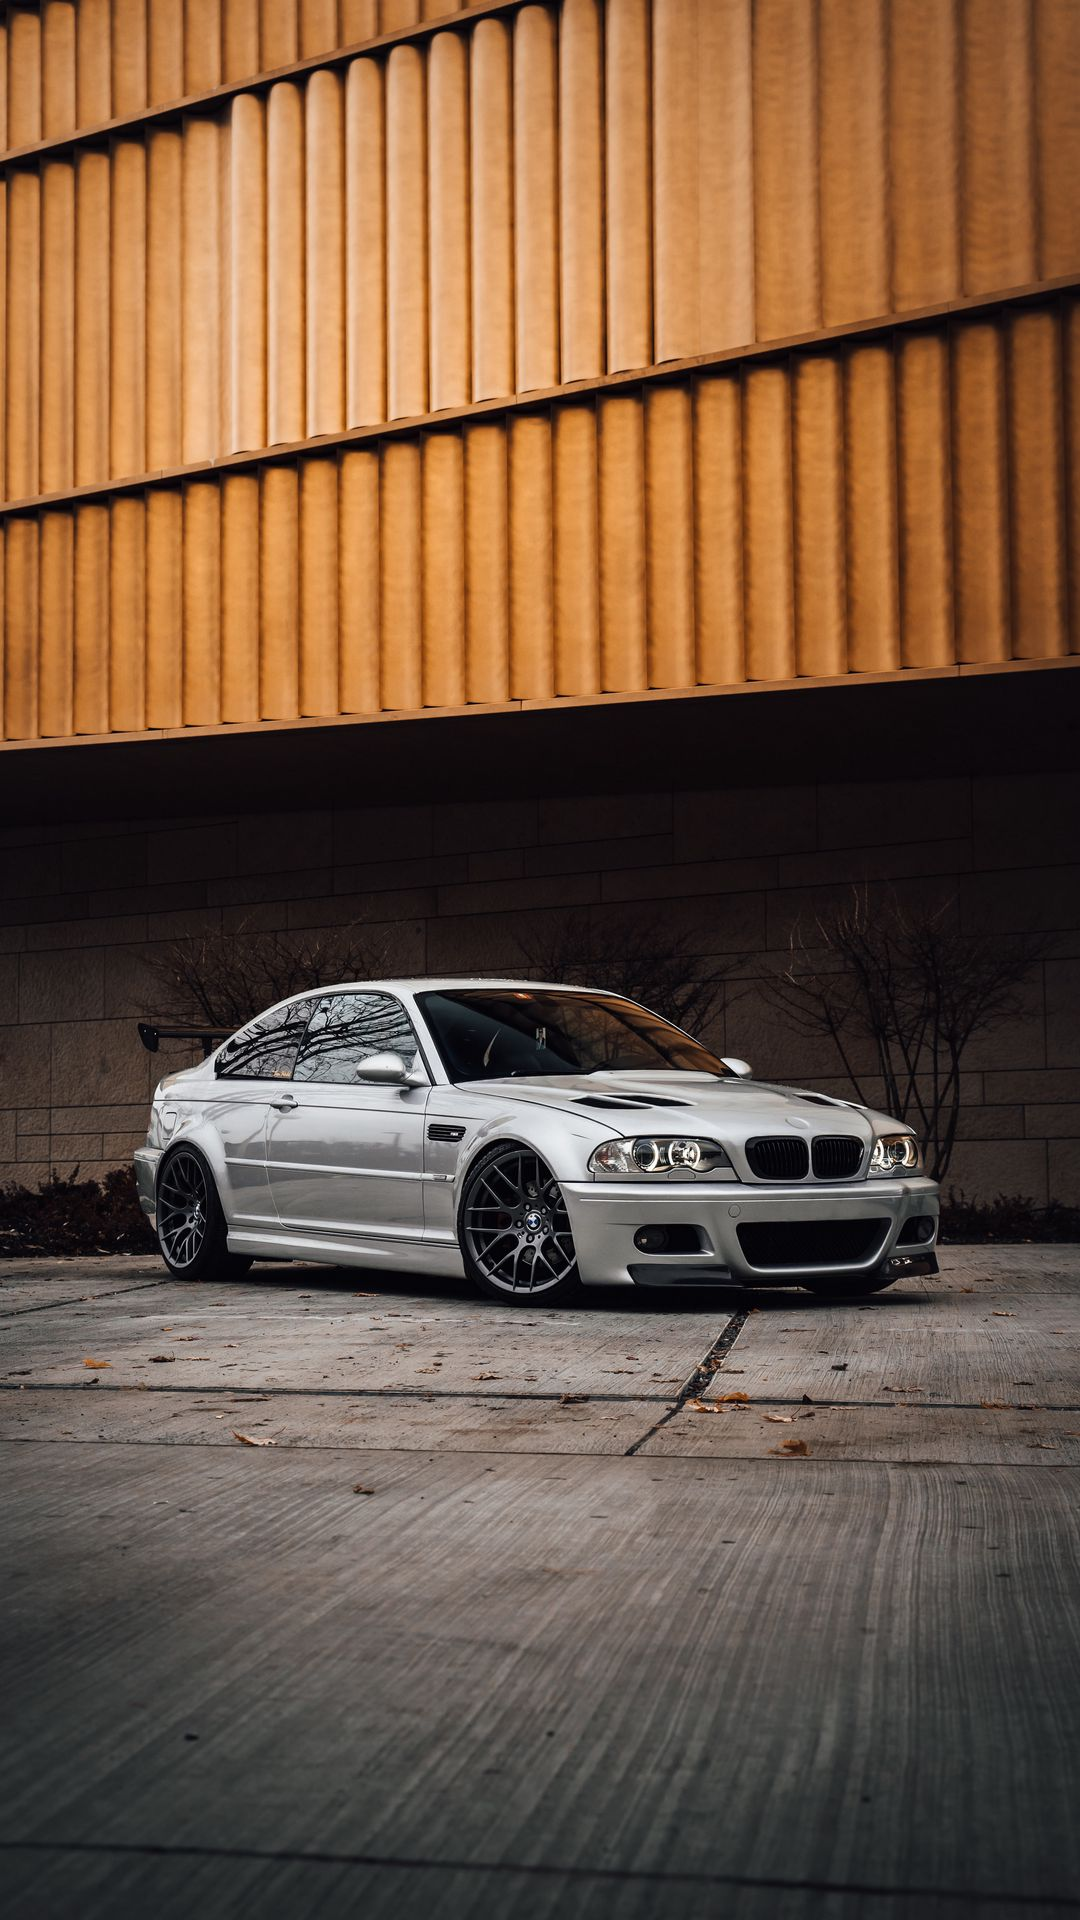 BMW Wallpapers HD 4K Pictures